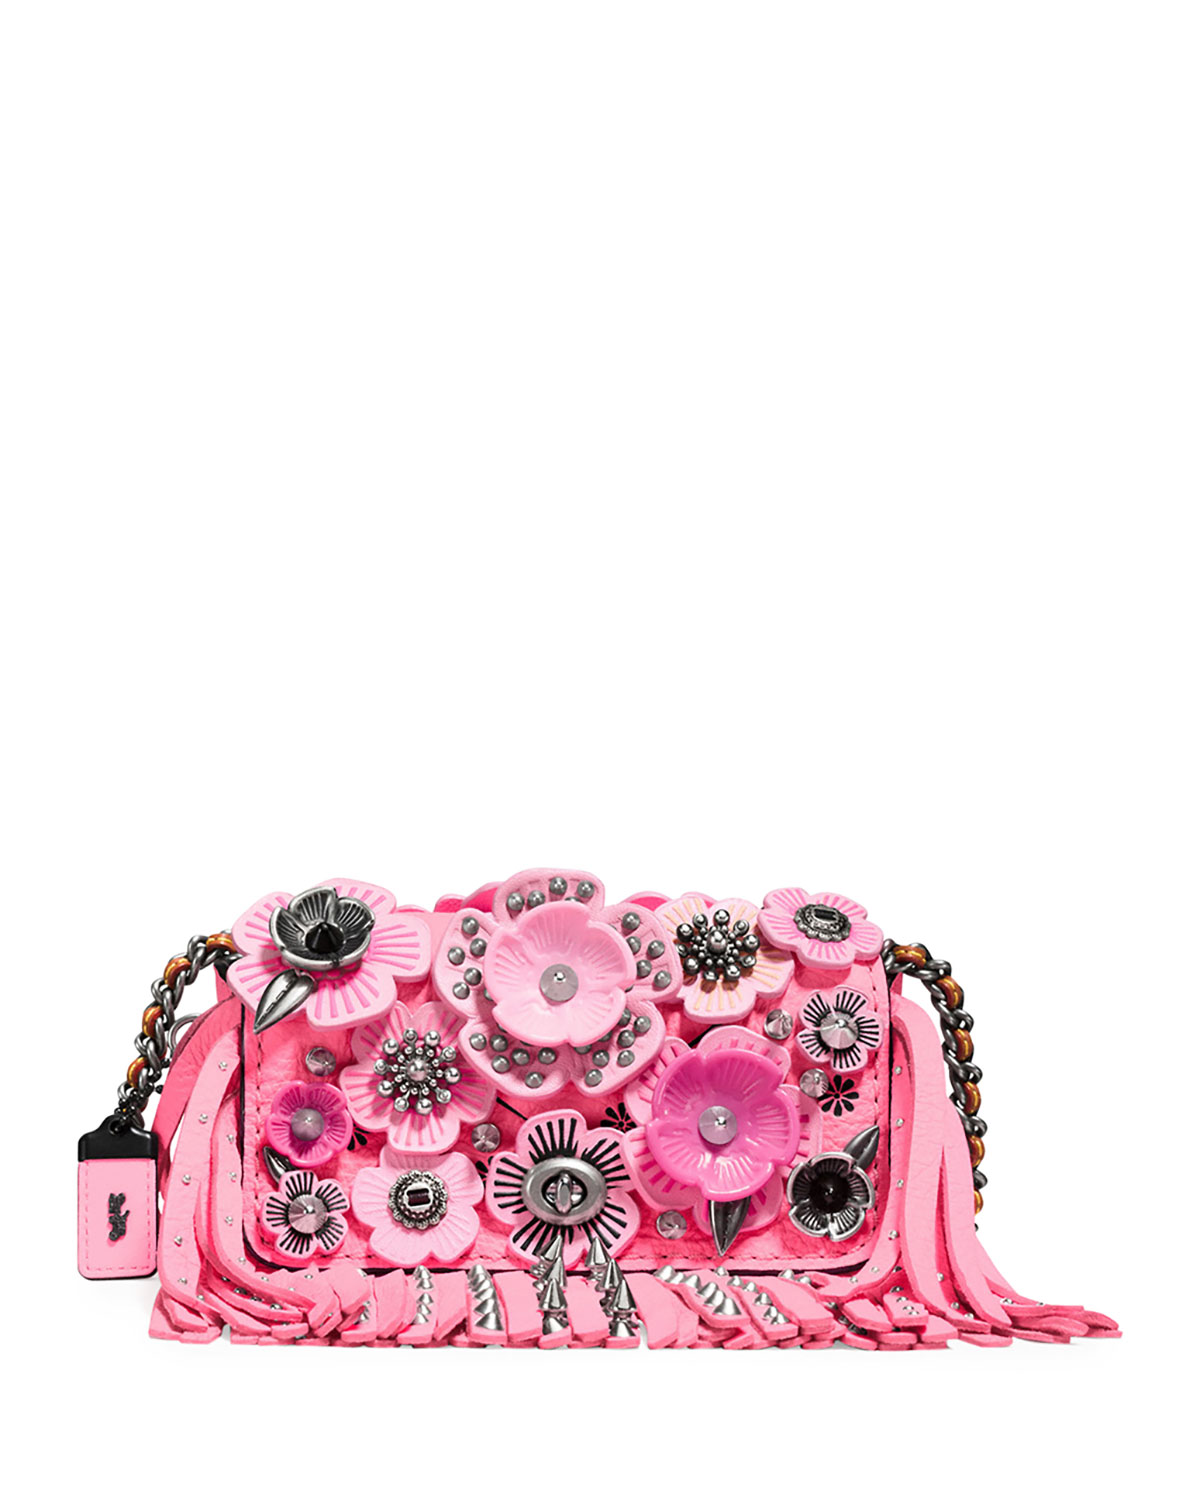 Dinky 15 Tea Rose Fringe Shoulder Bag, Pink/Multi